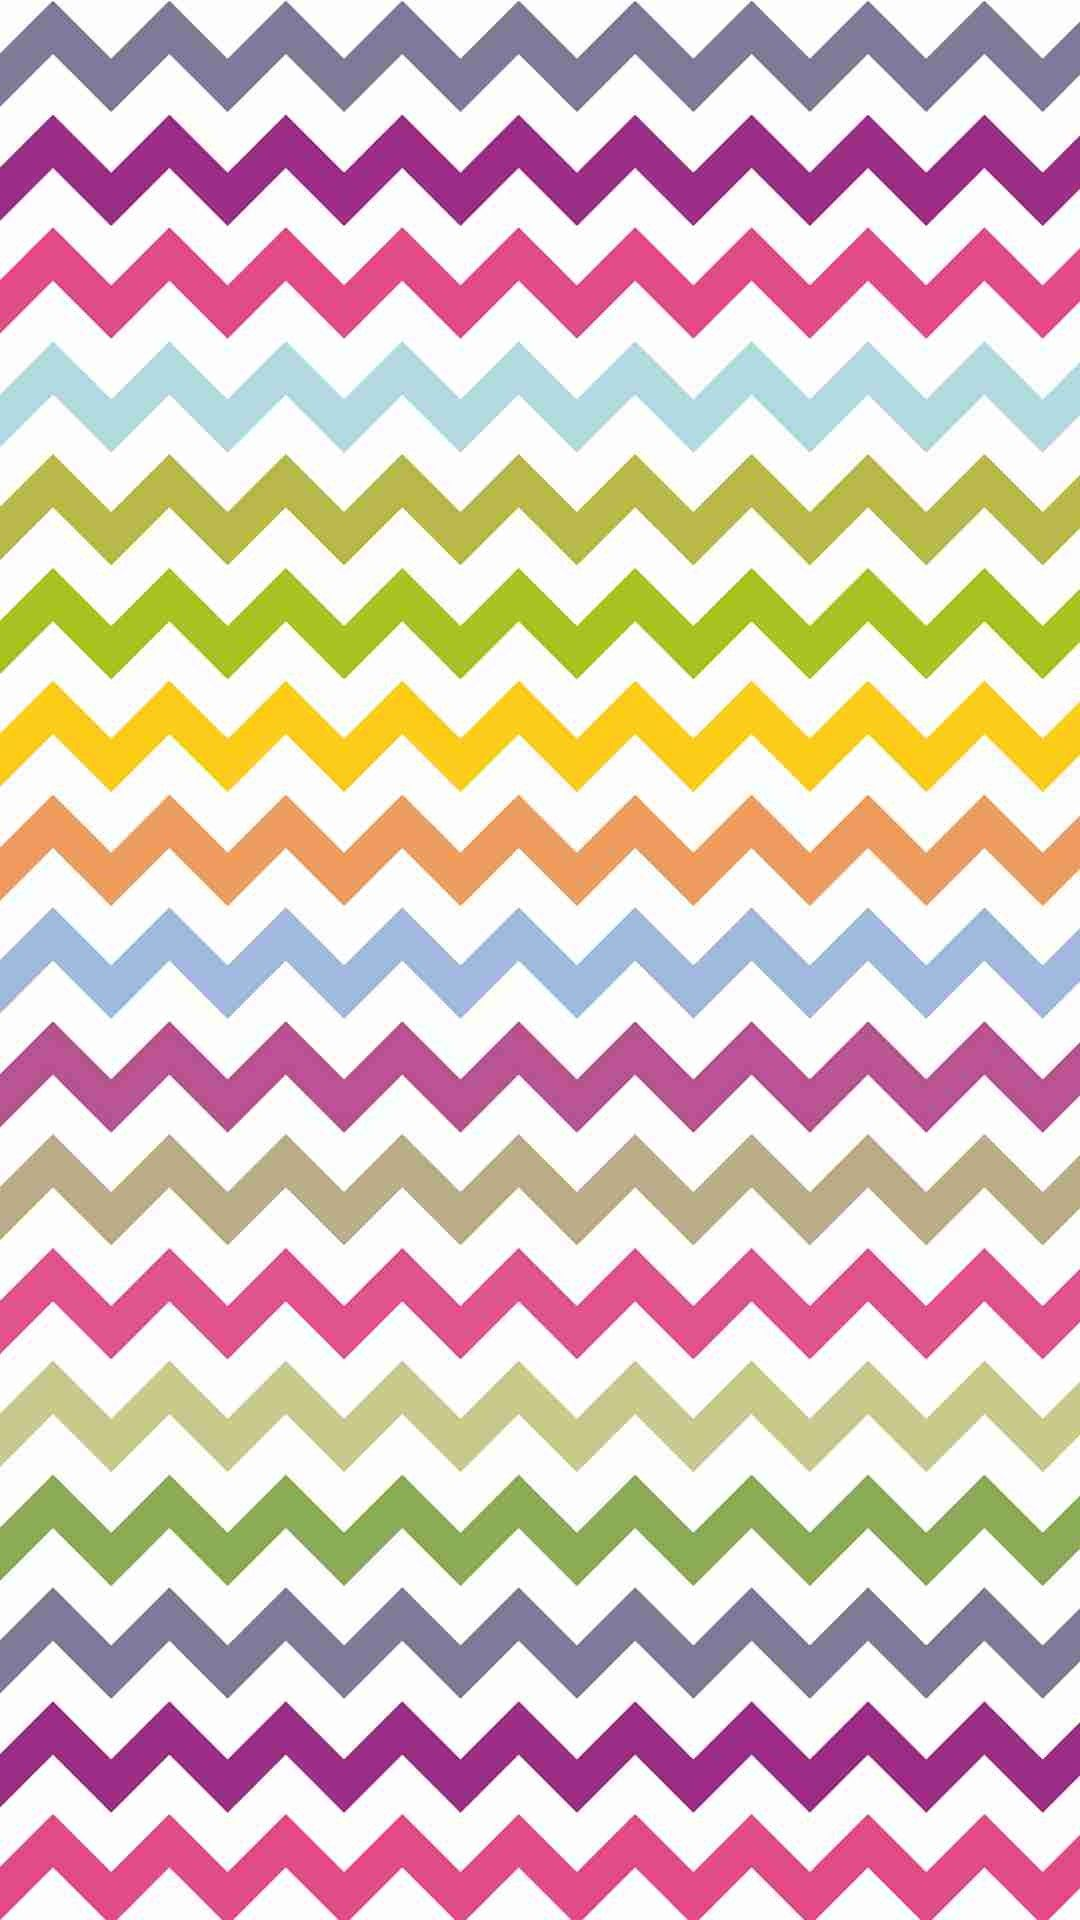 Bright Colors Zigzag And Chevron IPhone 6 Plus Wallpaper